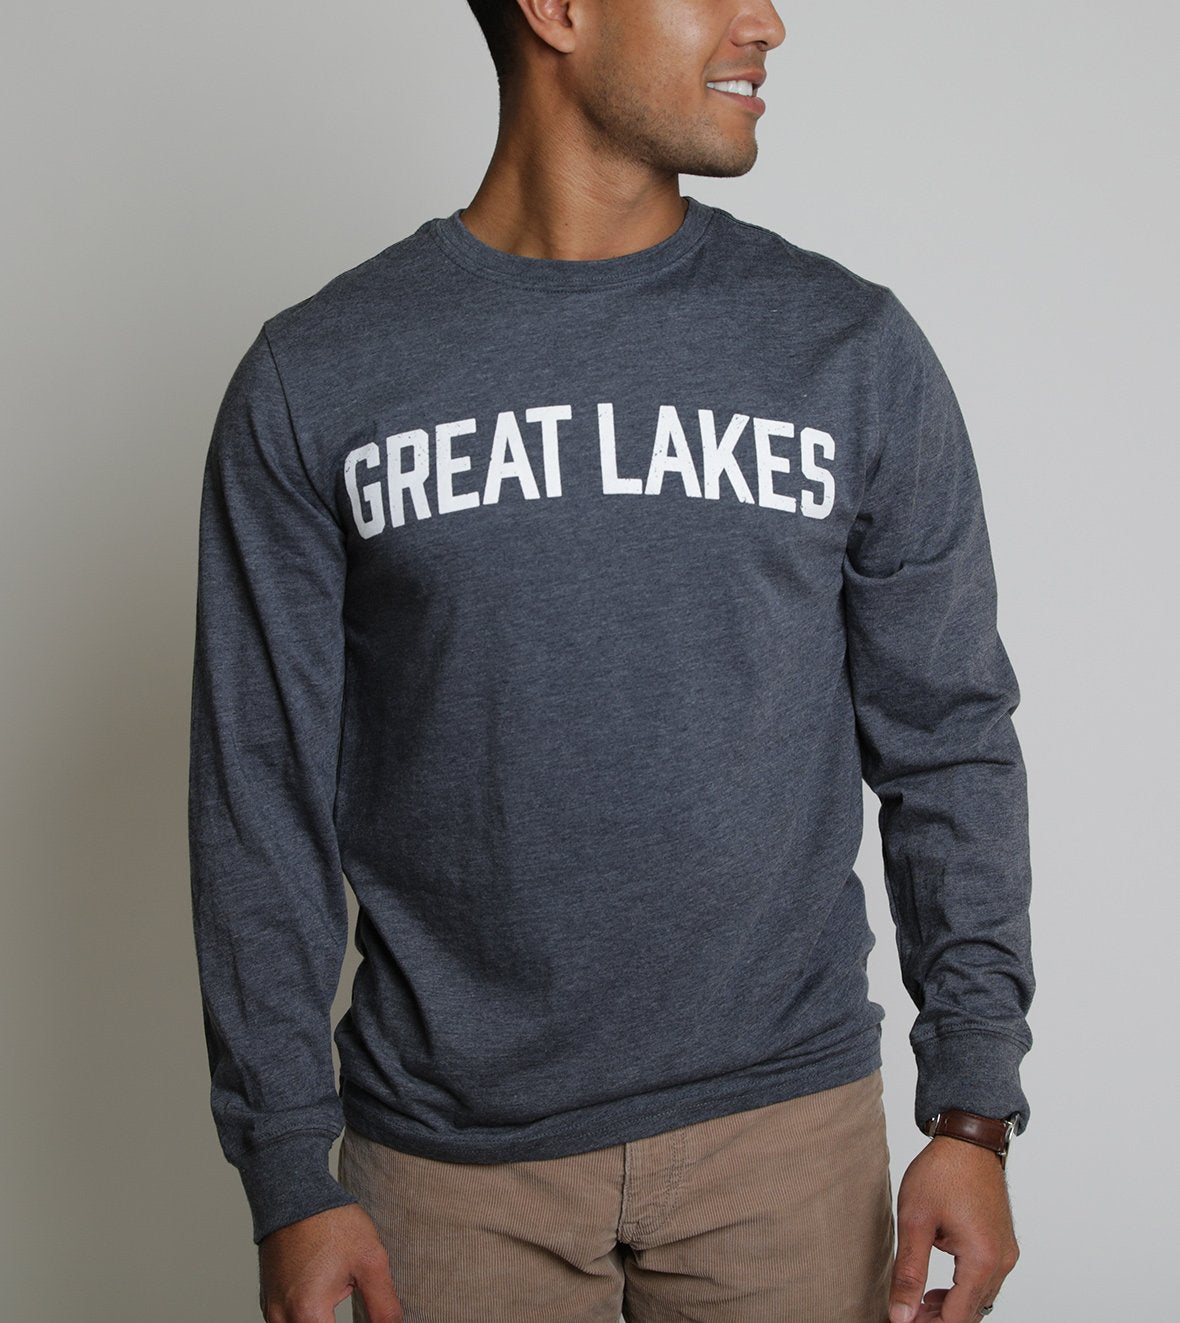 Weathered Tee - Long Sleeve - Heather Navy - The Lake and Company